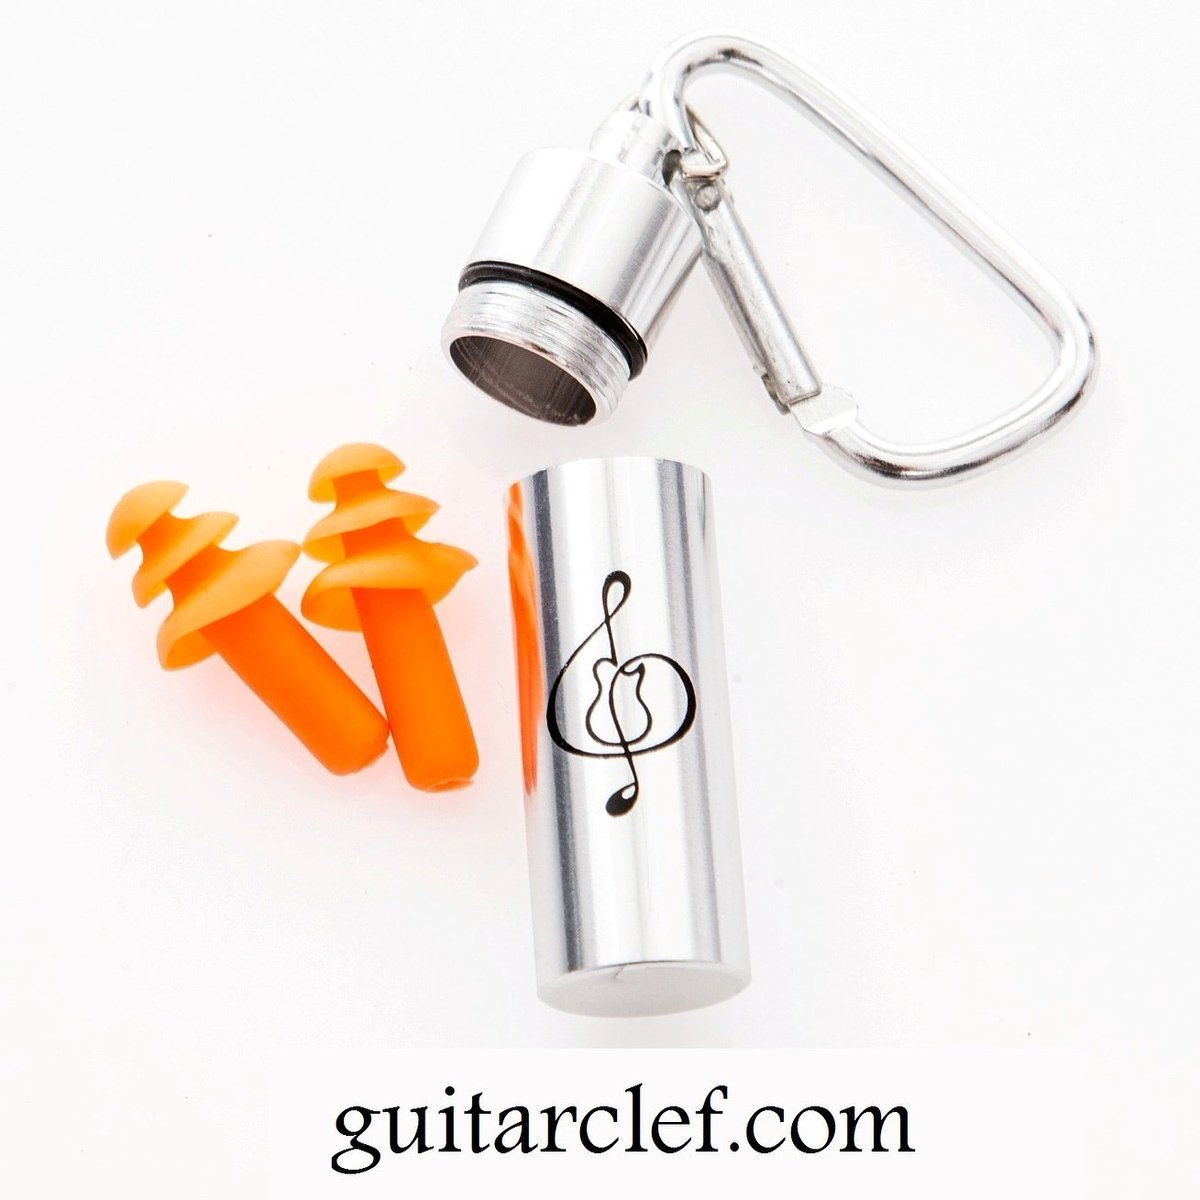 Clip to your gear...Save your ears! #clip-on canister with #earplugs! $10 #protection #livemusic #luthiers #techs #saveyourears #musicgifts<br>http://pic.twitter.com/gkVO25uBzk